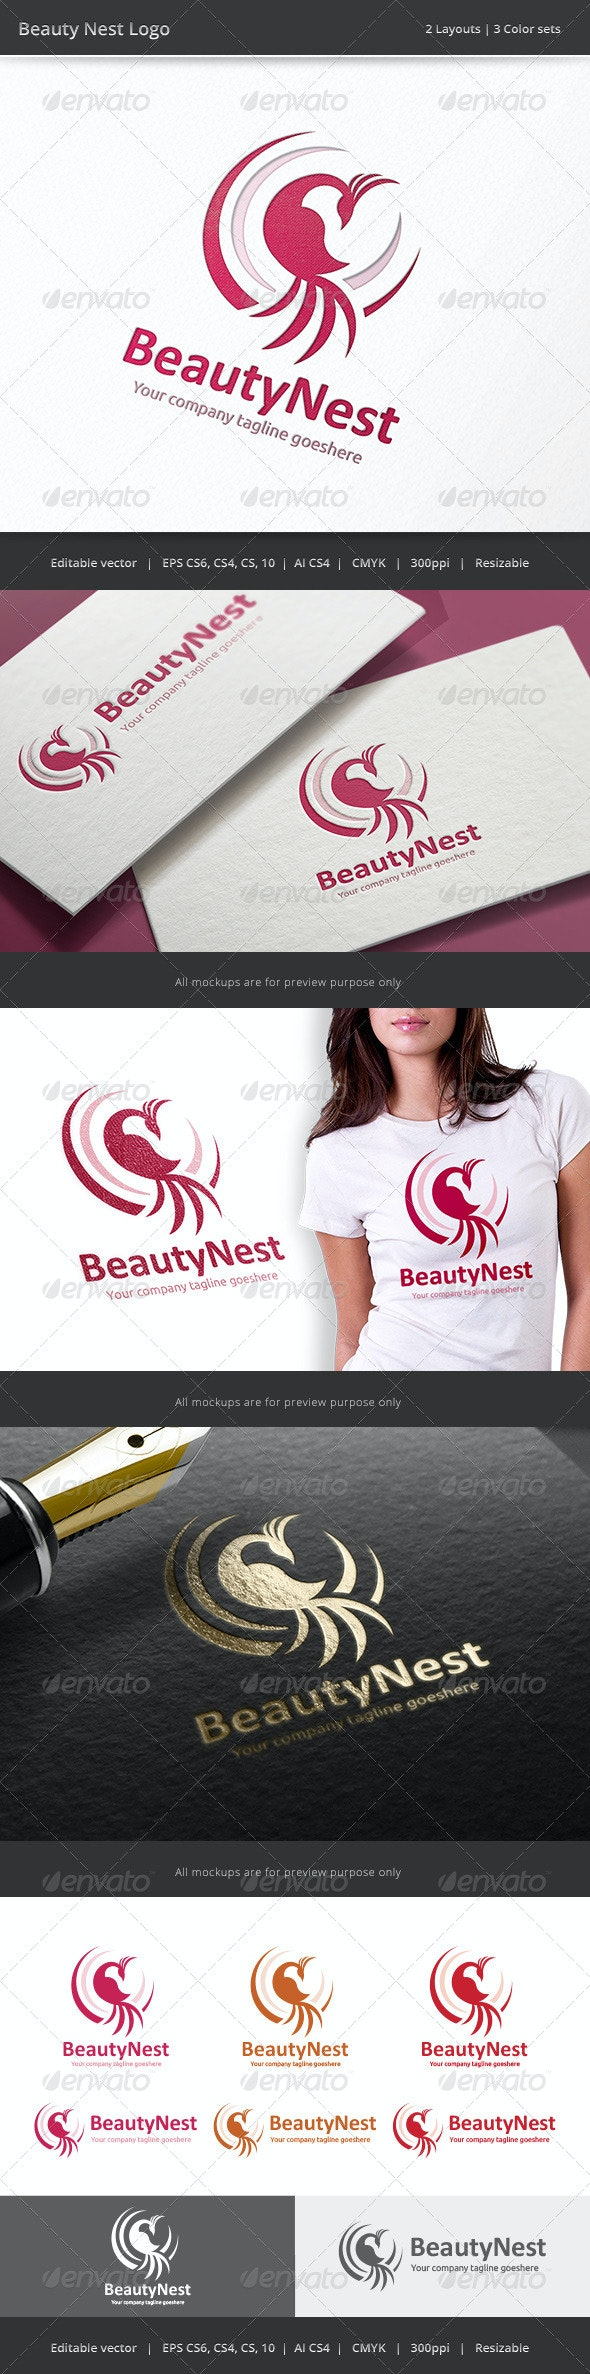 Beauty Nest Logo - Nature Logo Templates